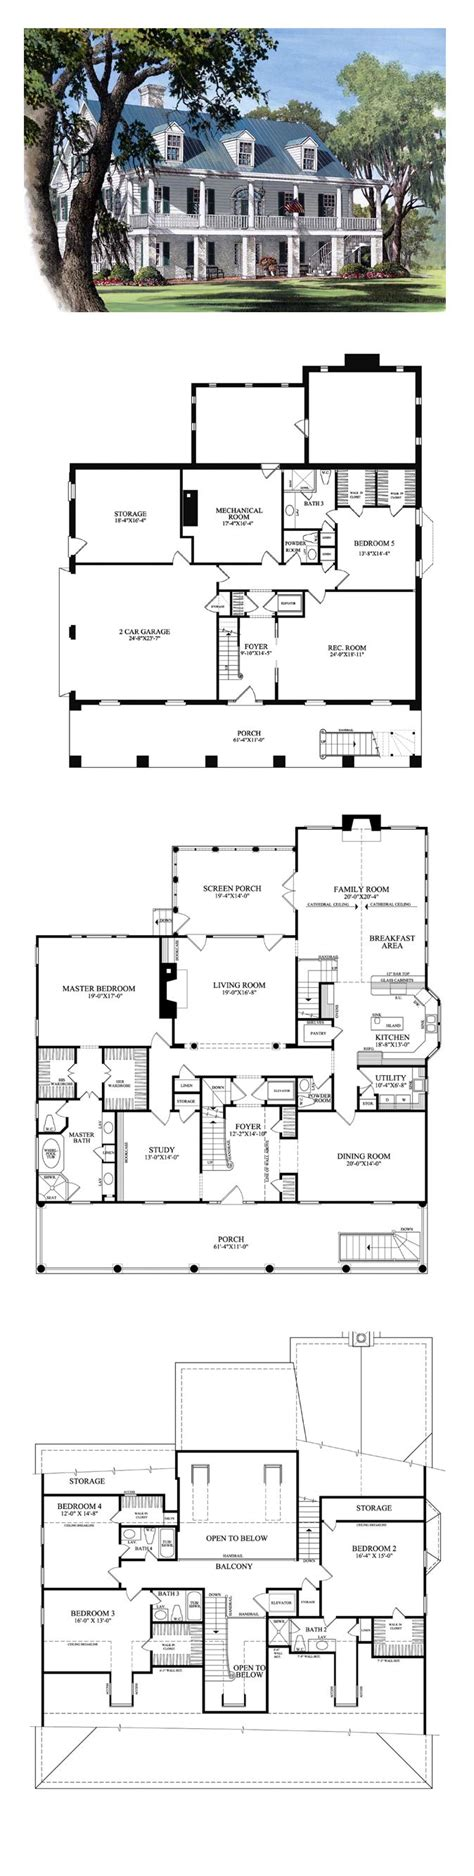 plantation style floor plans house plan plantation plans mini mansion shotgun style